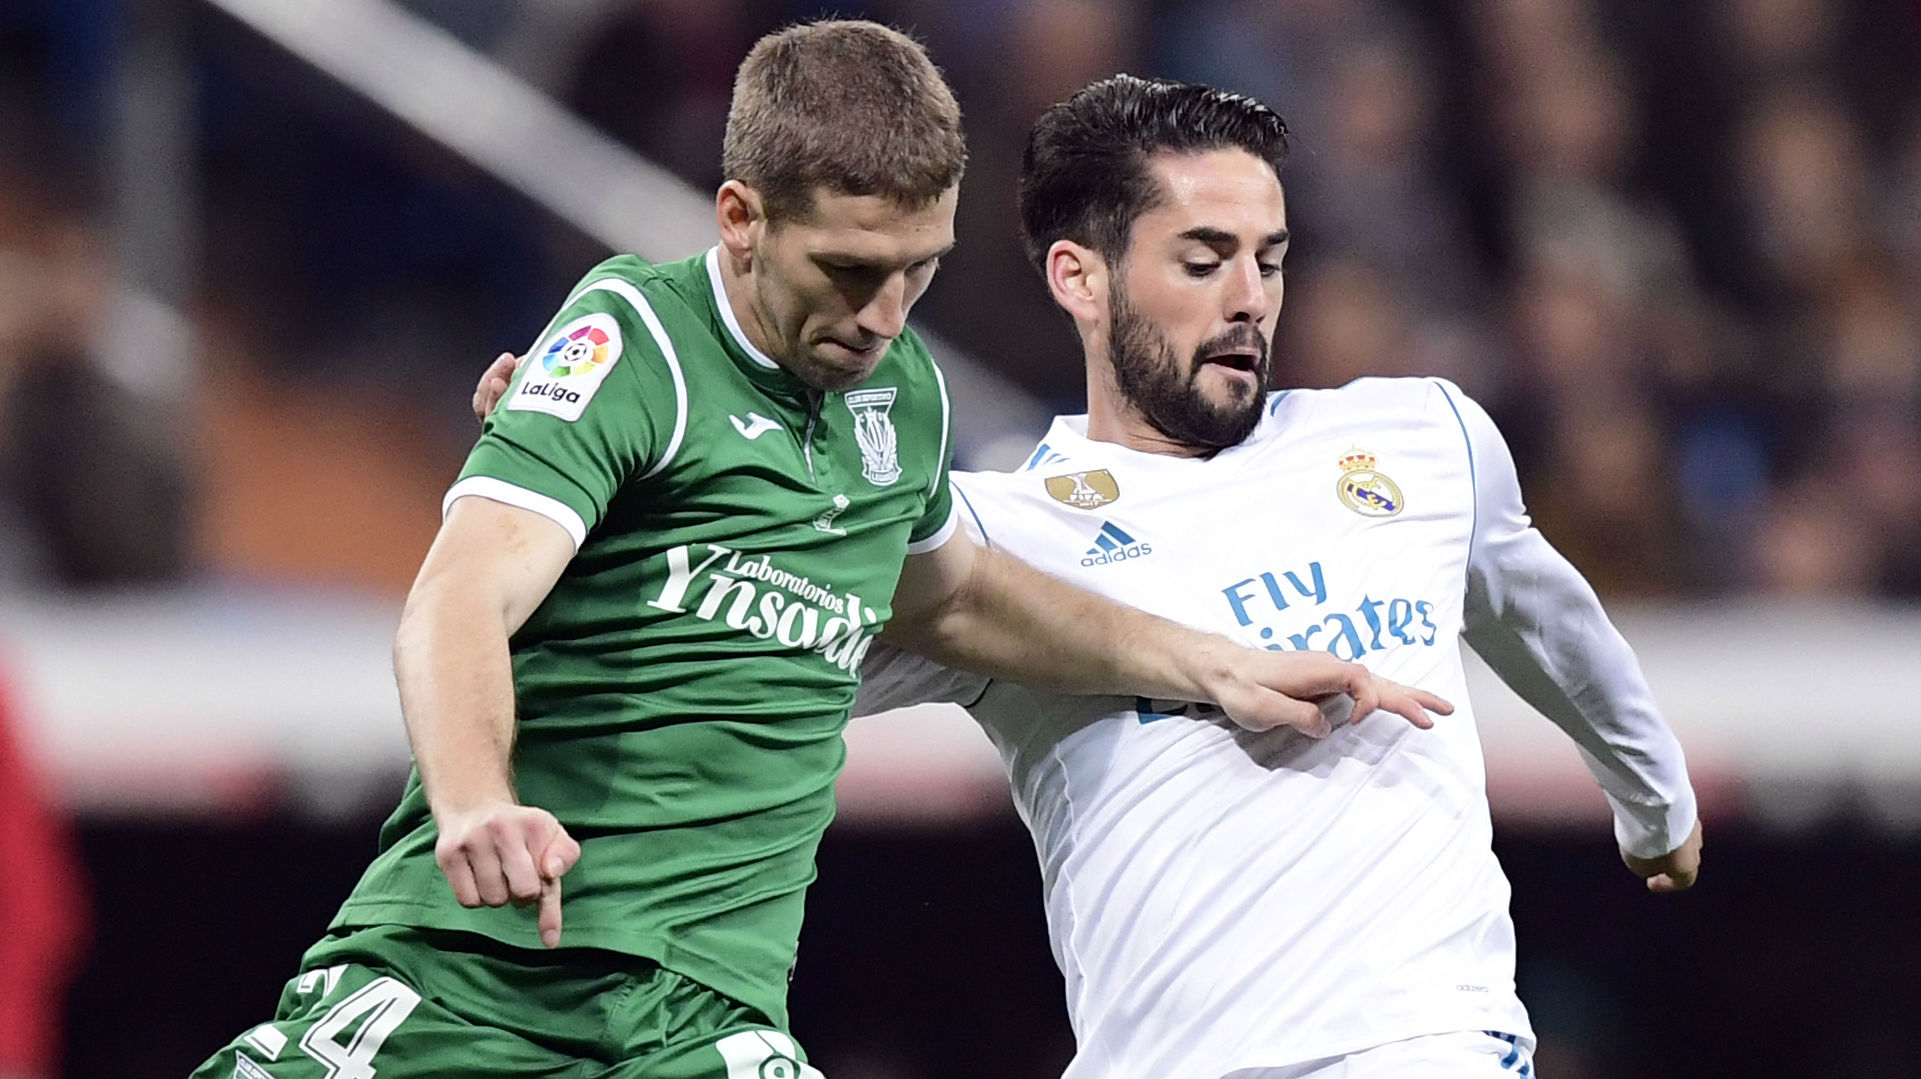 Madrid eliminated by Leganes from Copa del Rey